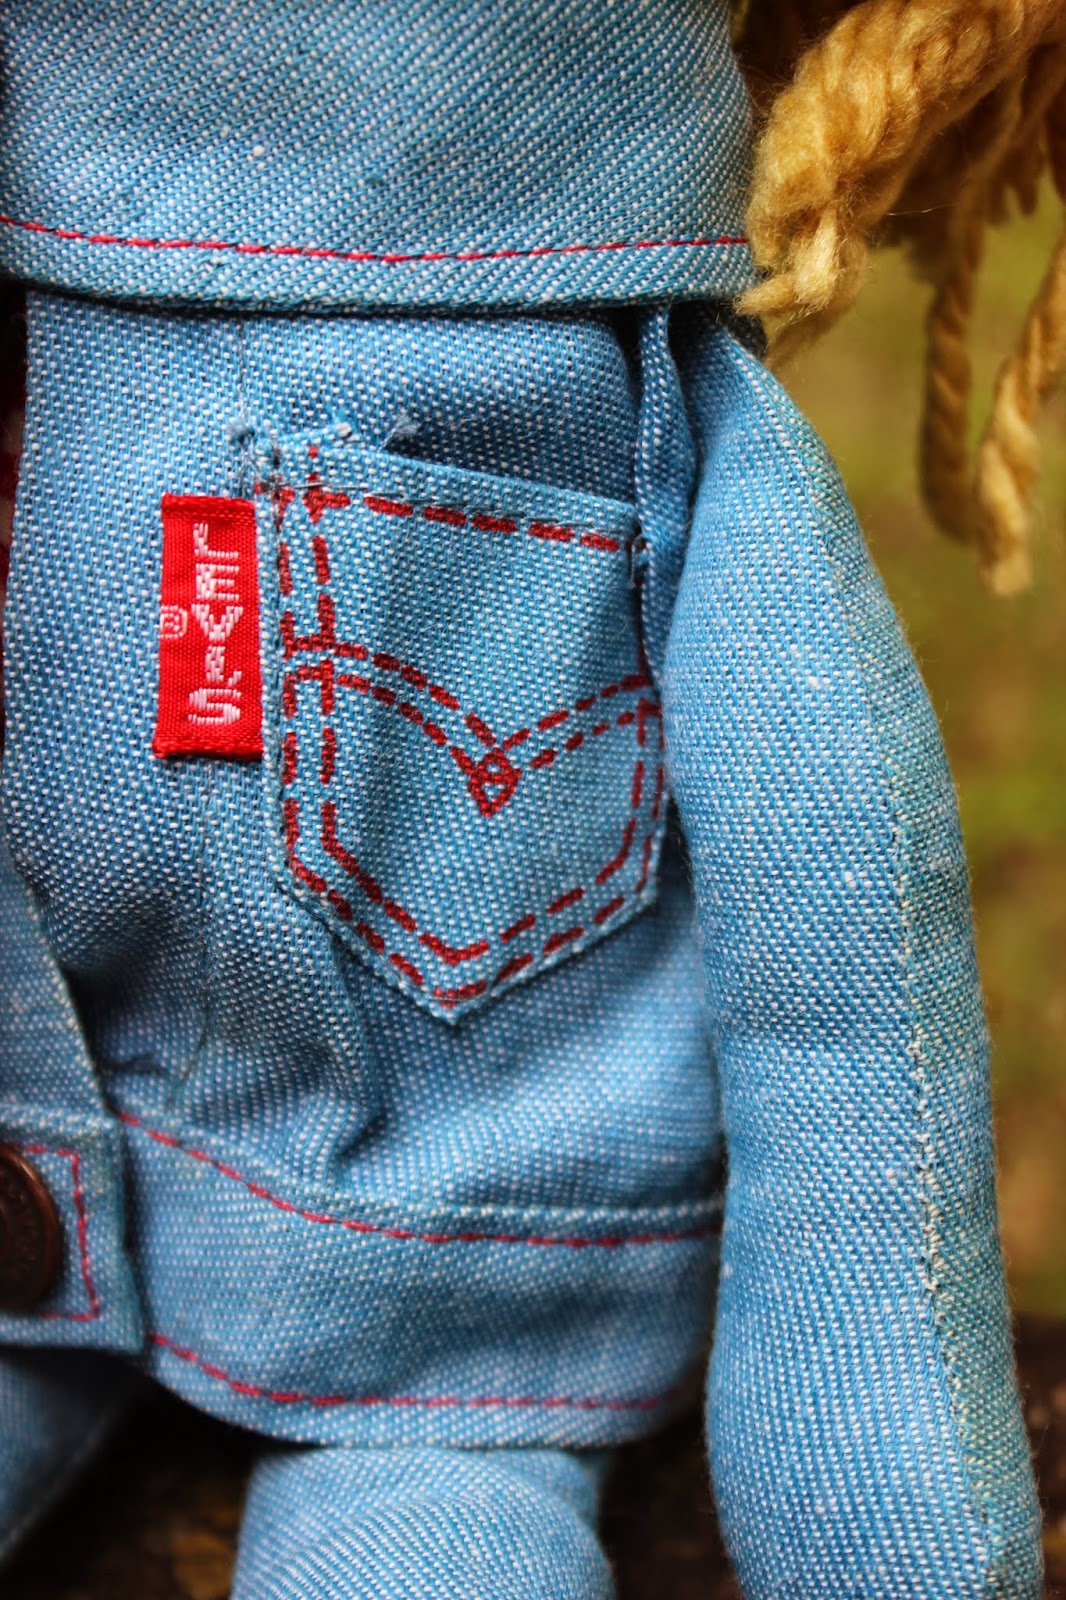 Coolant Leak Repair Cost >> PLANET OF THE DOLLS: Doll-A-Day 176: Levi's Denim Rag Doll